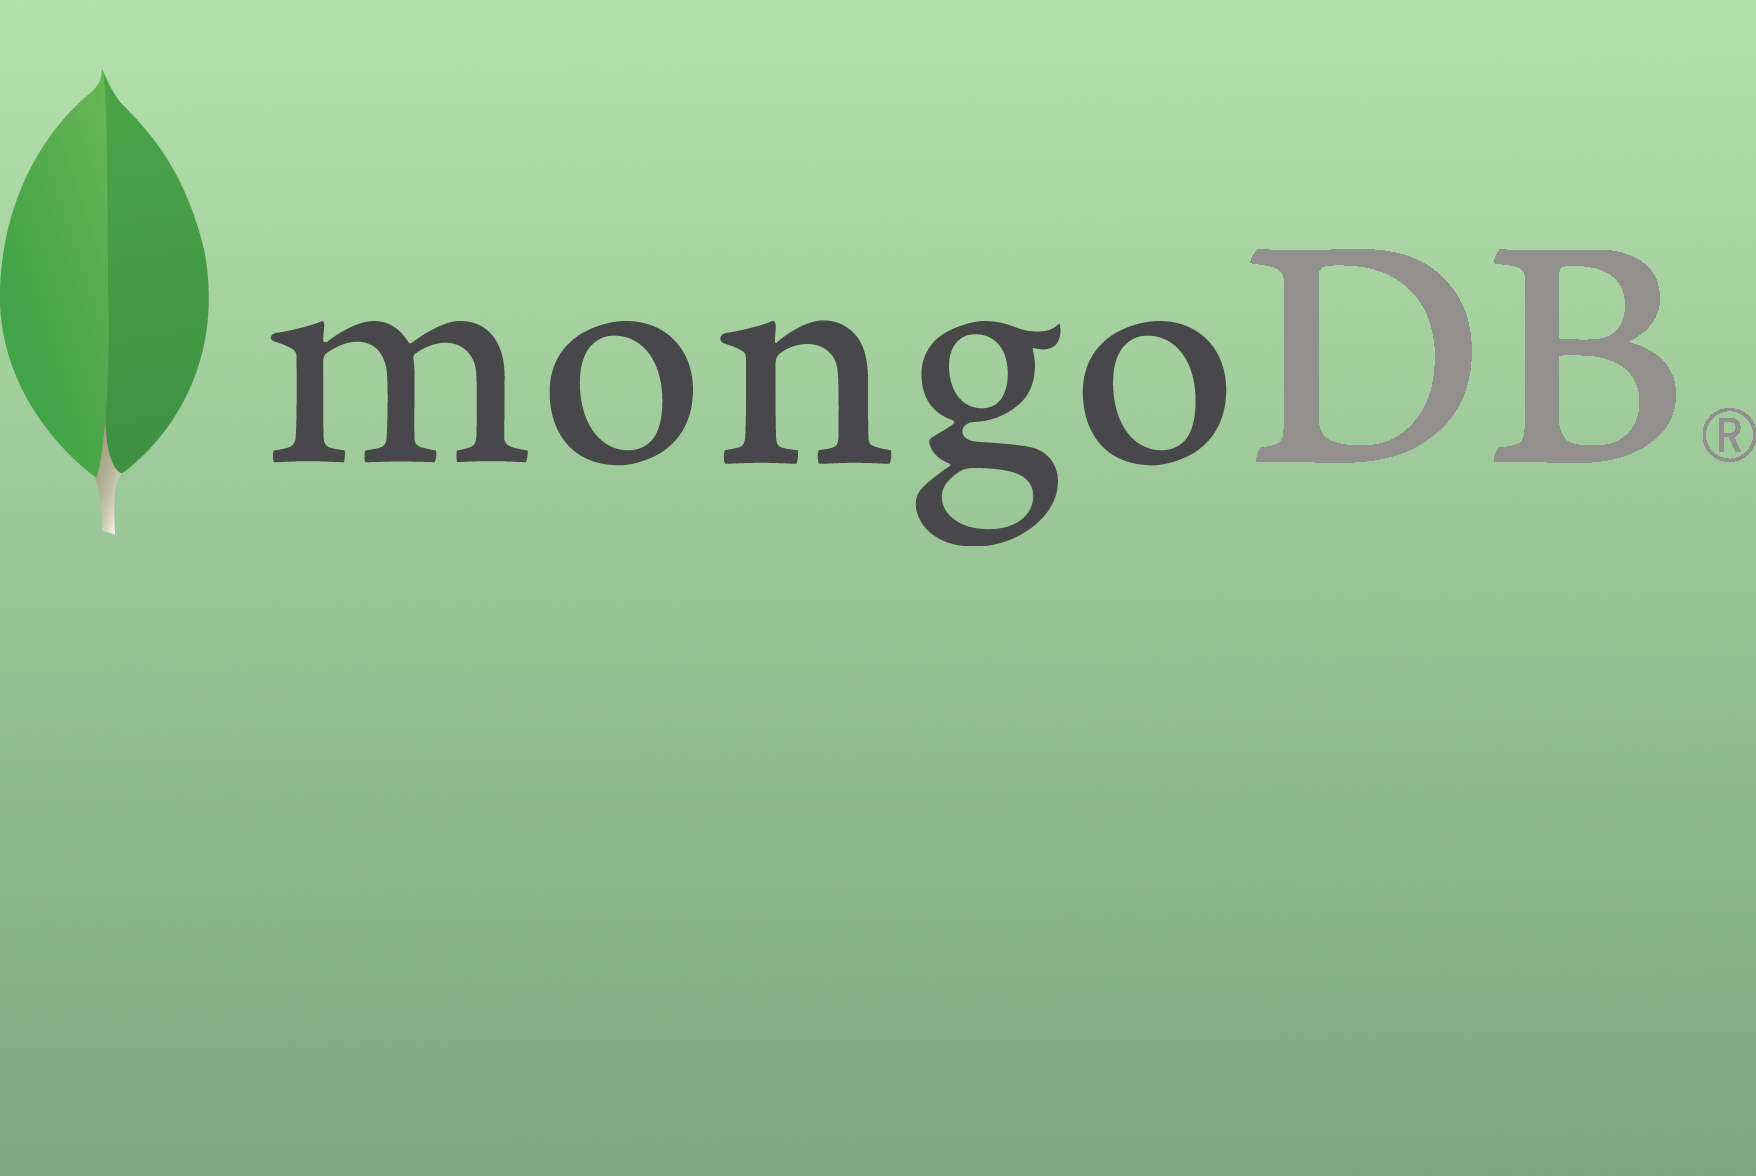 Upgrading MongoDB from 3.6 to 4.0